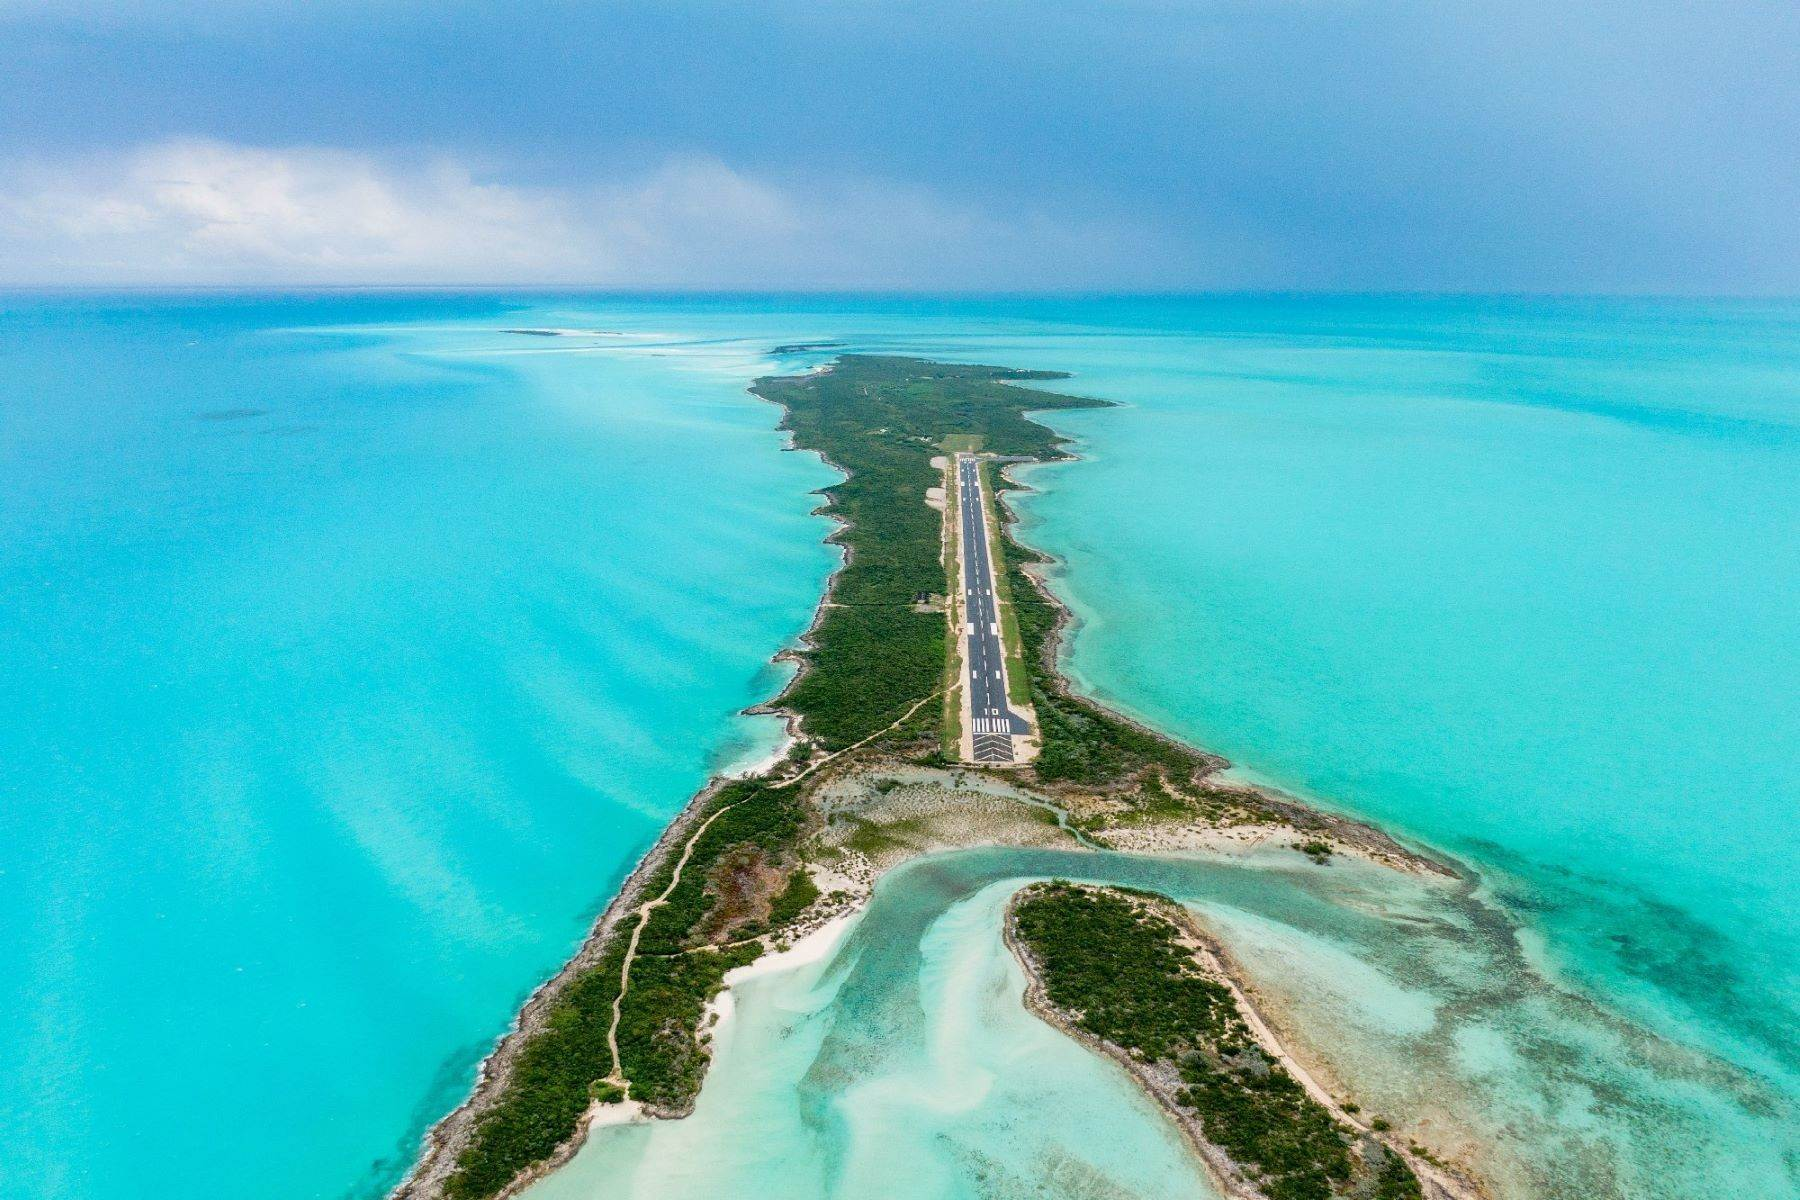 2. Private Islands for Sale at Exuma Cays, Exuma Bahamas